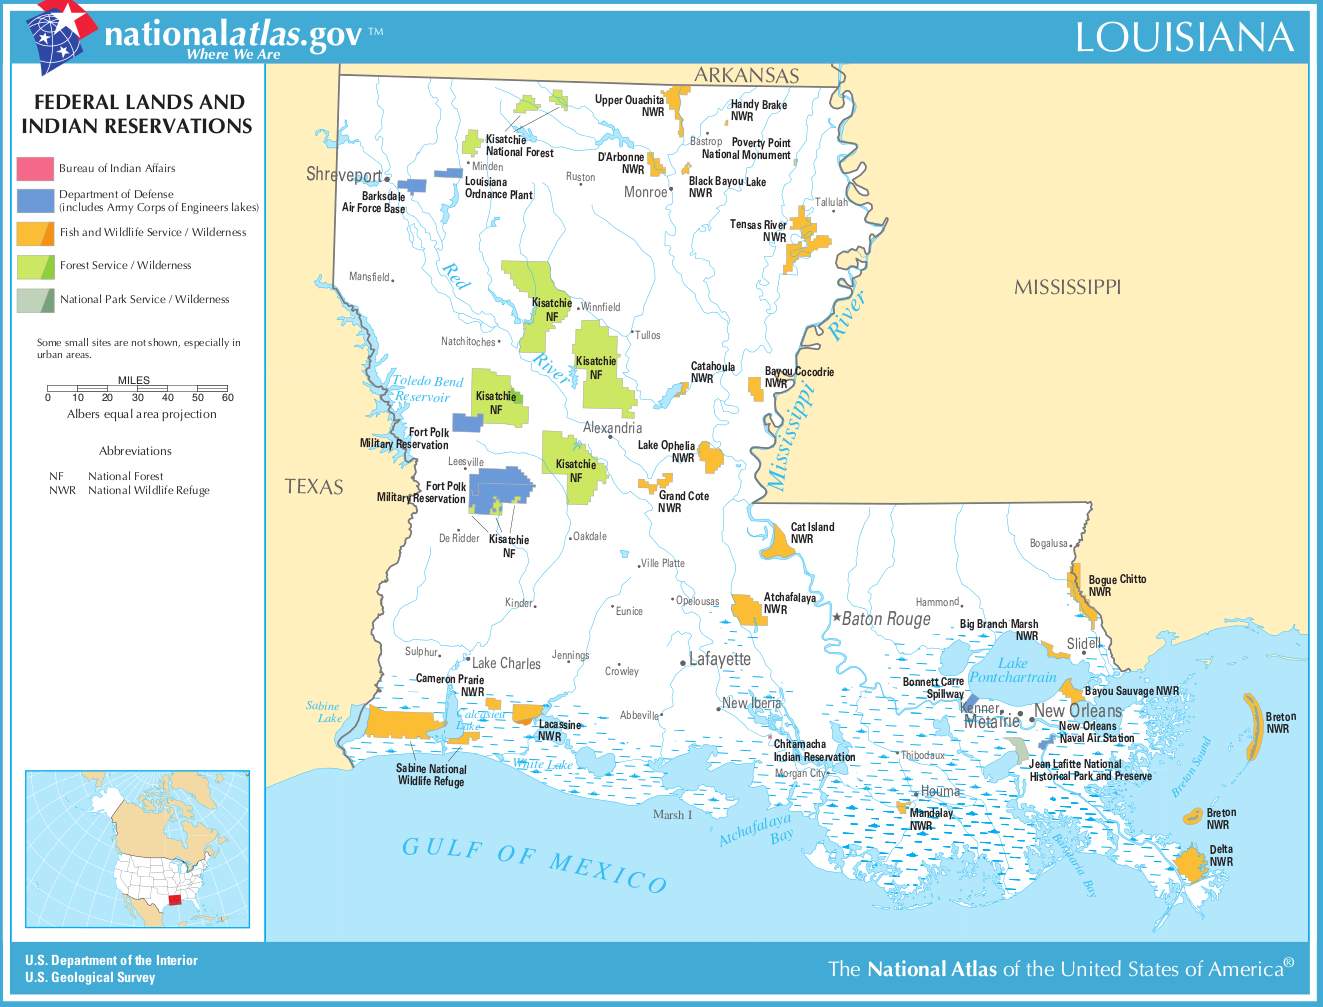 Map Of Louisiana Map Federal Lands And Indian Reservations - Louisiana map